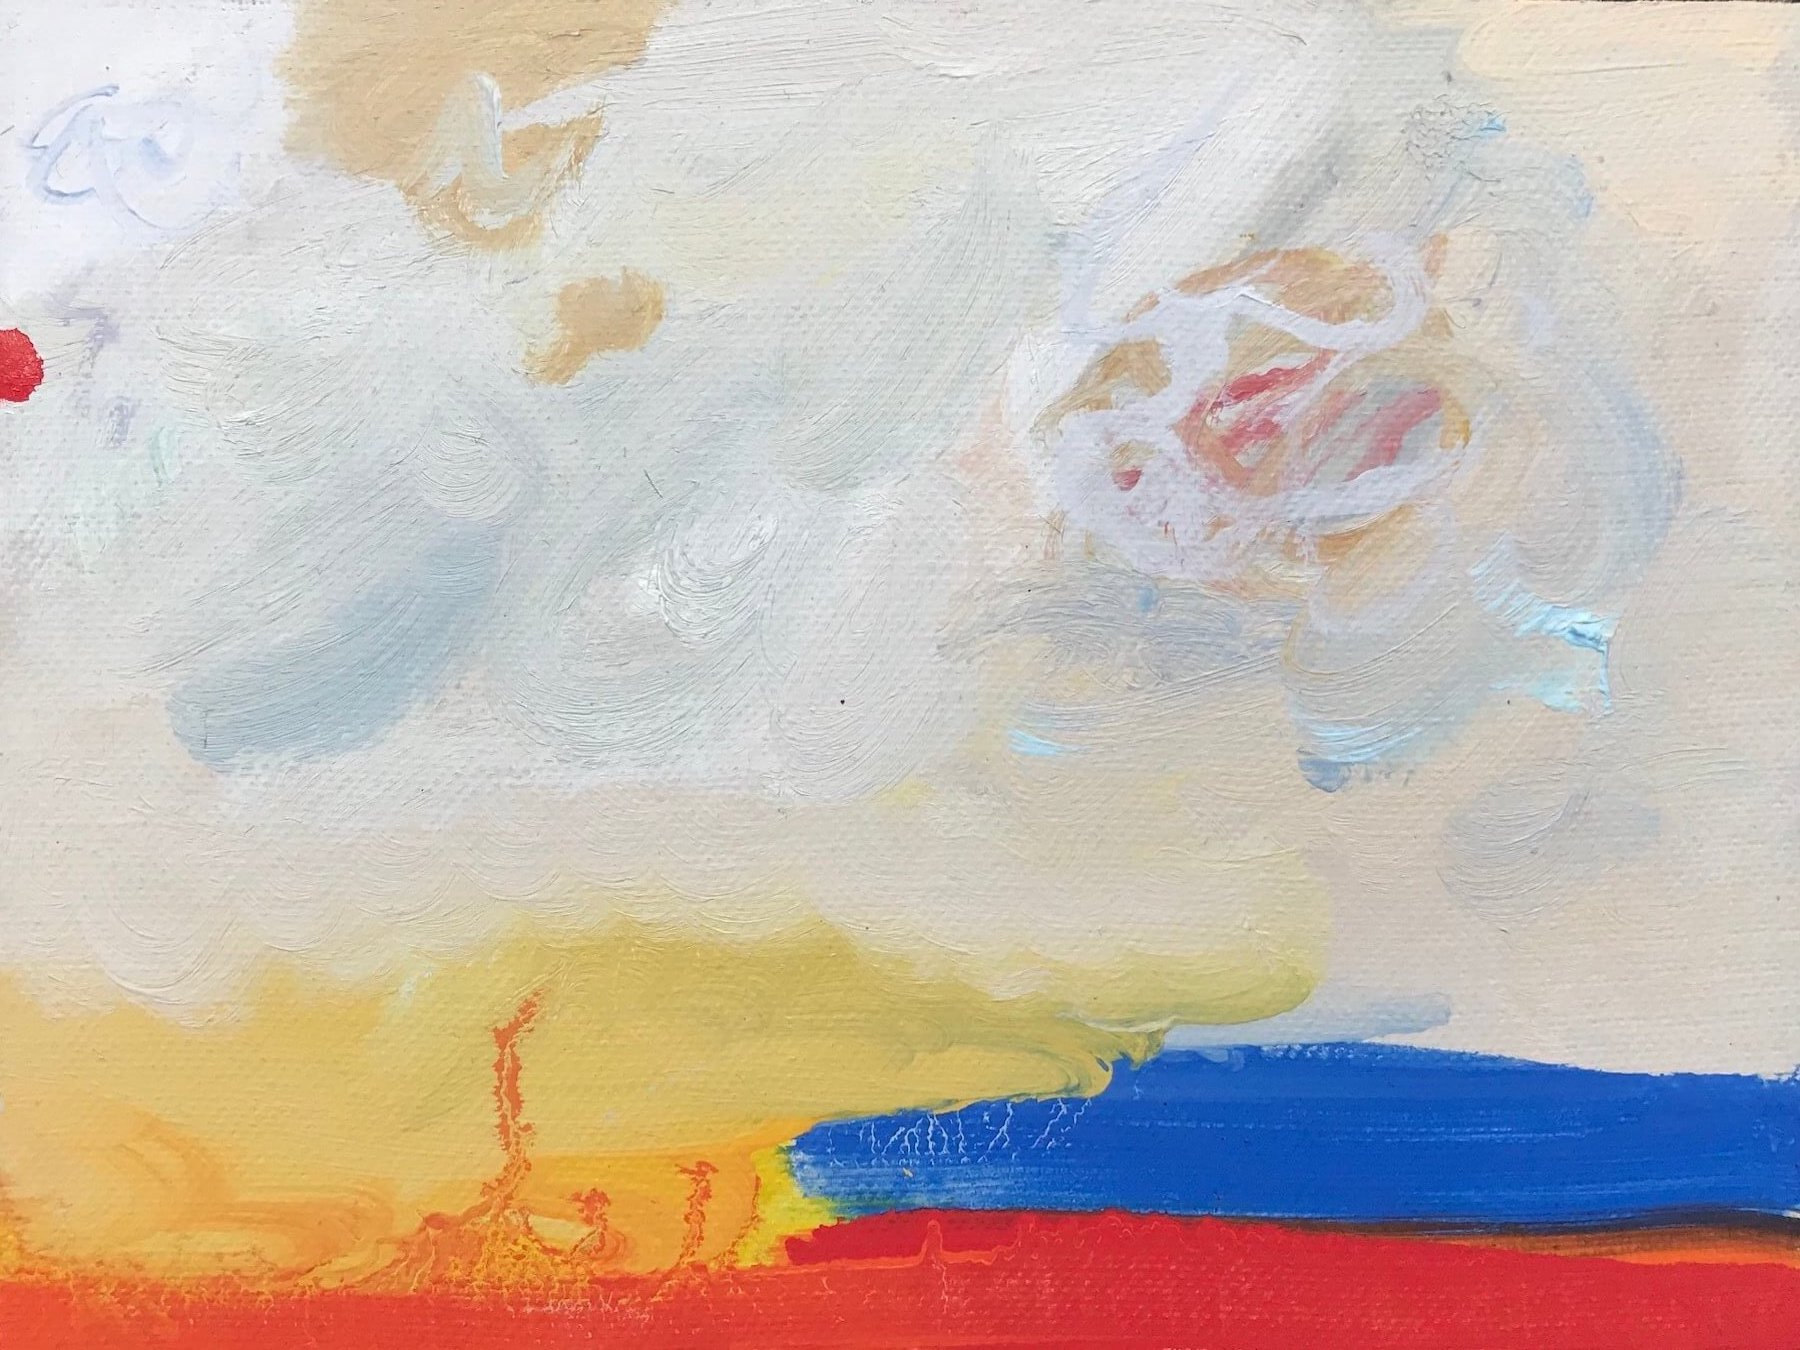 An abstract painting of a landscape that is mostly a rich cloudy sky. The bottom of the painting has swaths of bright red, blue and yellow.